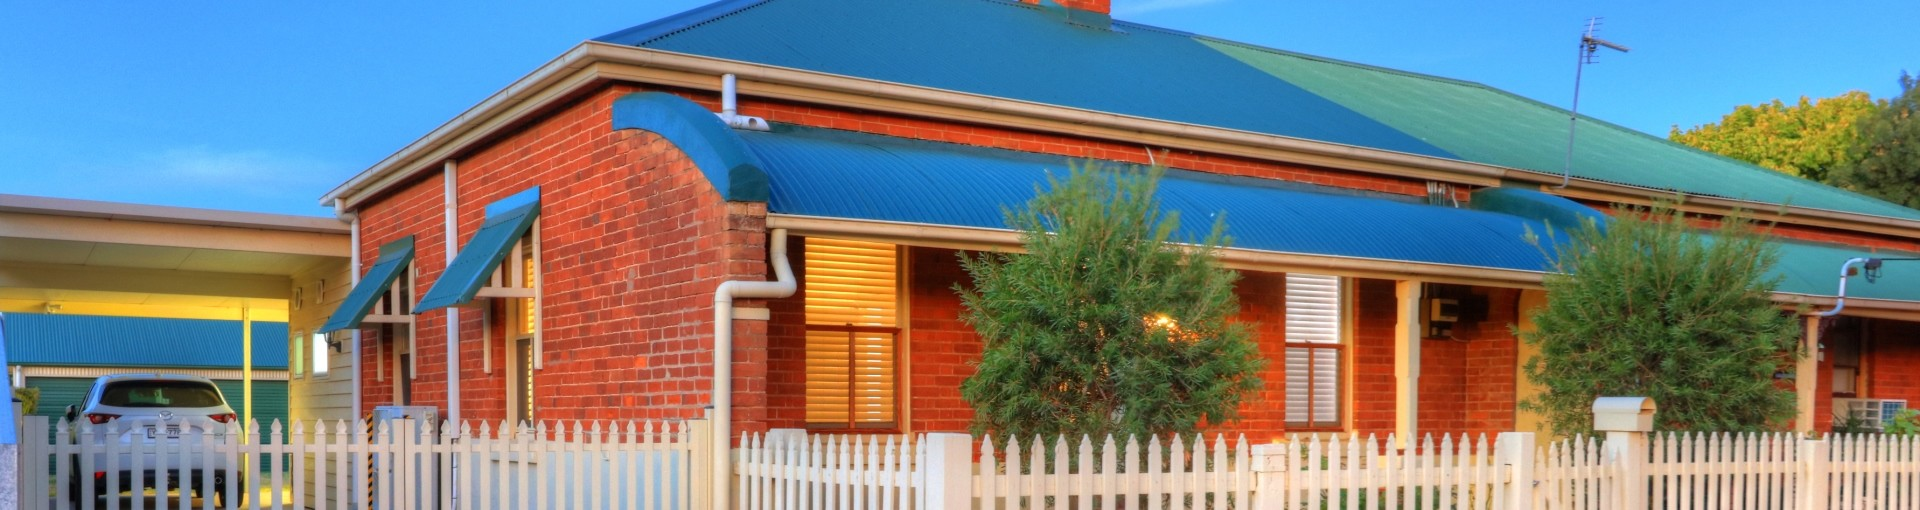 Cottage - Endeavour Court Motor Inn Dubbo NSW